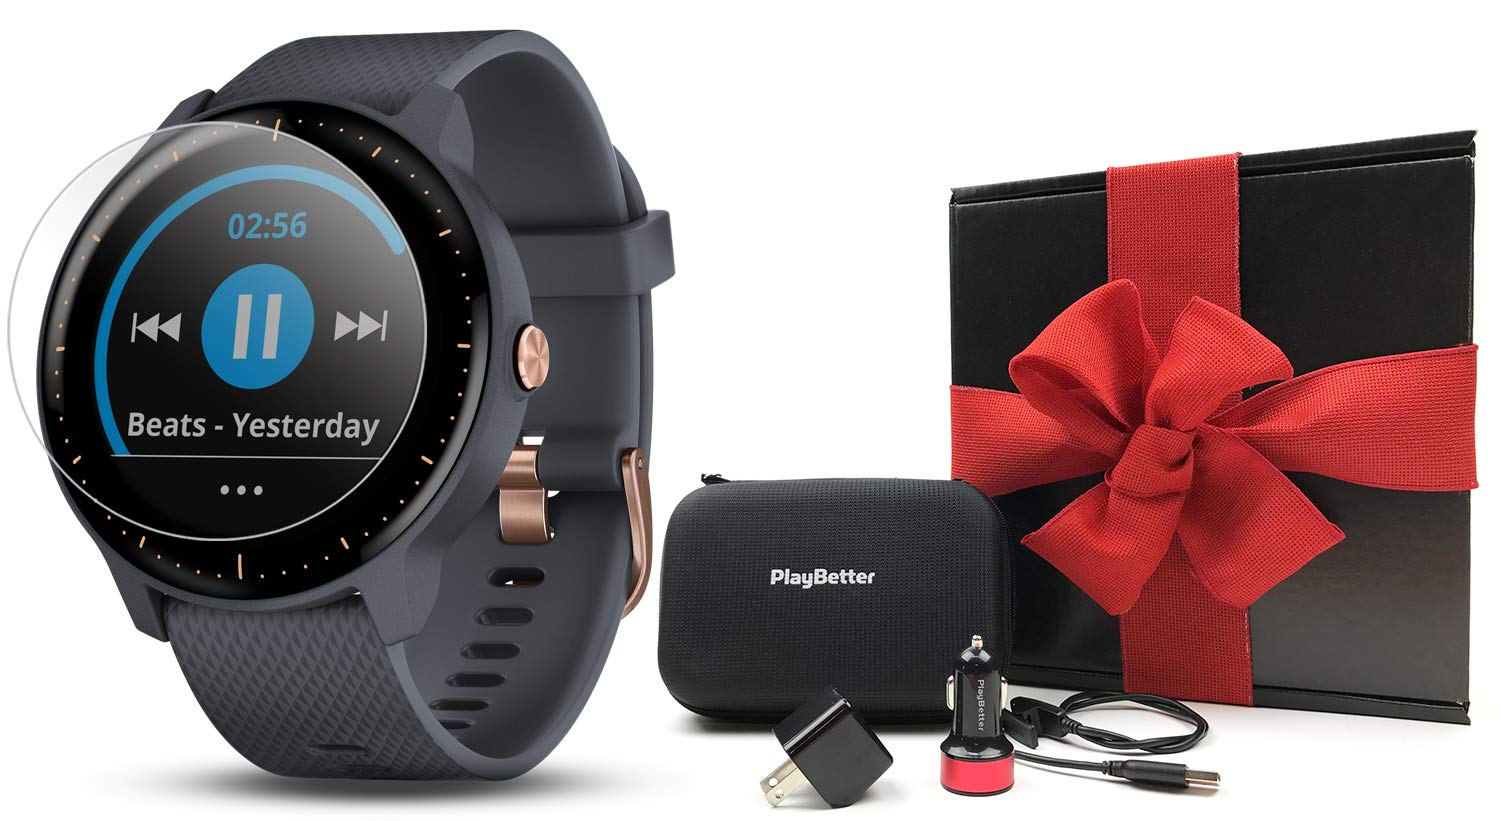 Garmin vivoactive 3 Music Gift Box Bundle | with HD Screen Protector (x4), PlayBetter USB Wall & Car Charging Adapters, Hard Case | Multi-Sport Fitness GPS Watch | Gift Box (Music - Blue/Rose Gold) by PlayBetter